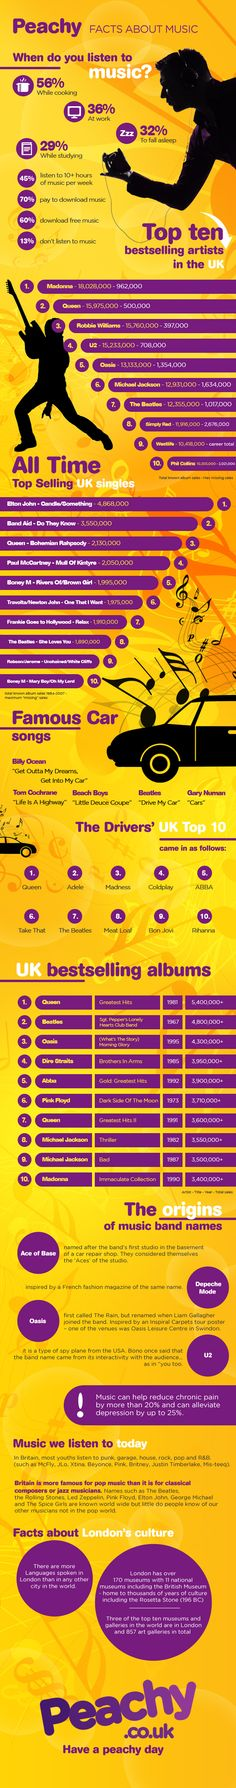 Infographics - Peachy Facts About Music